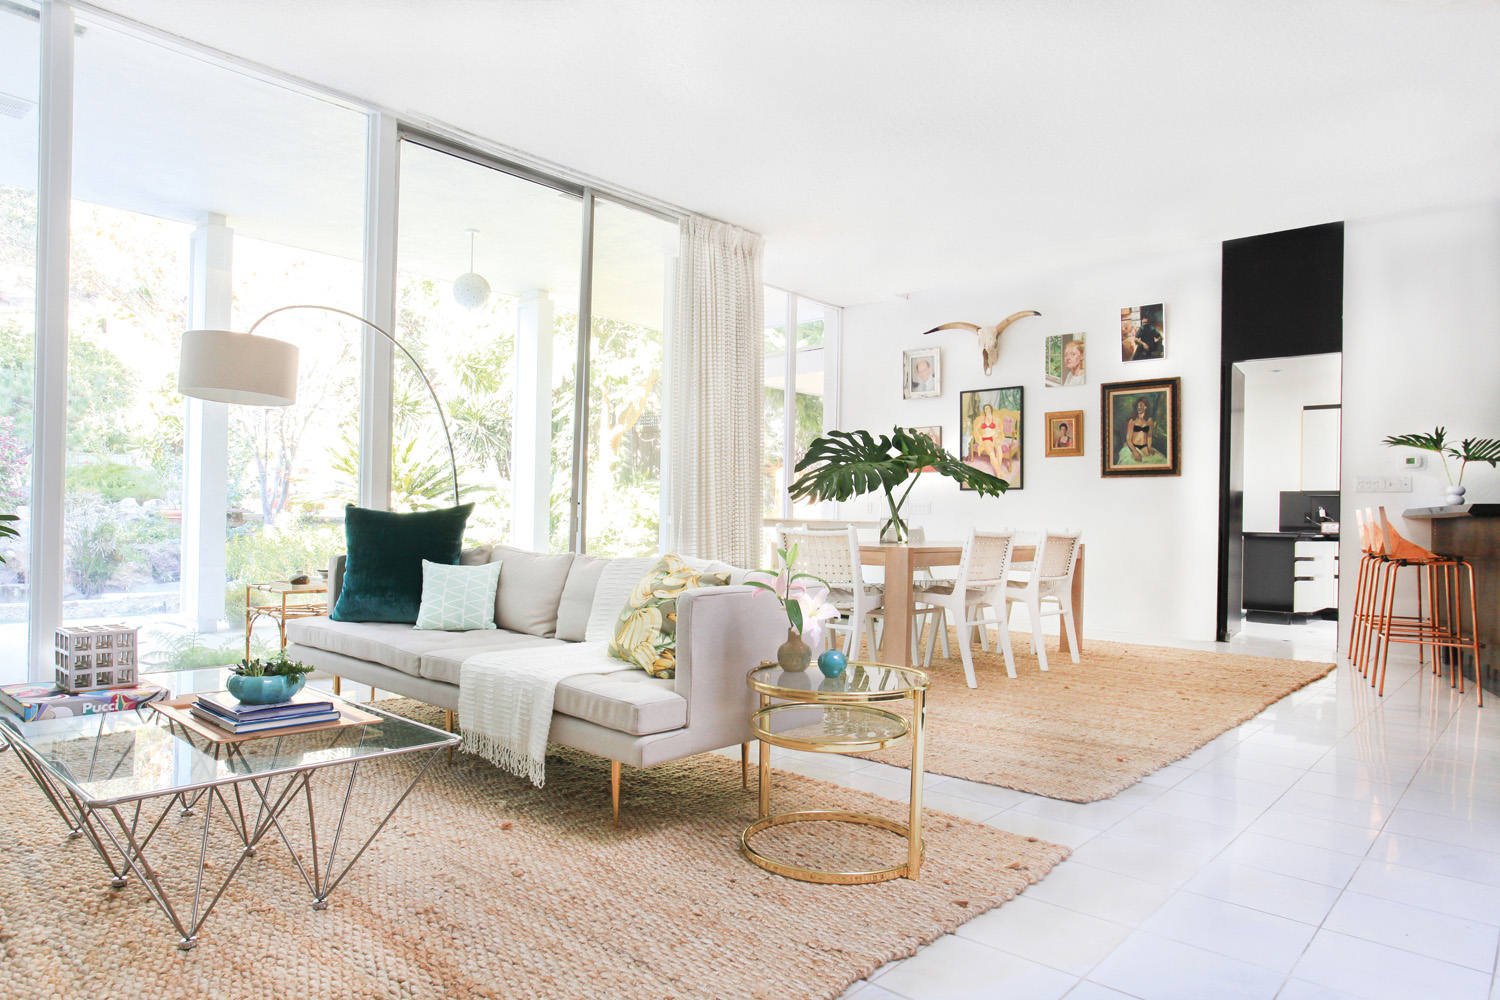 Grand windows ensure the space is always filled with natural light